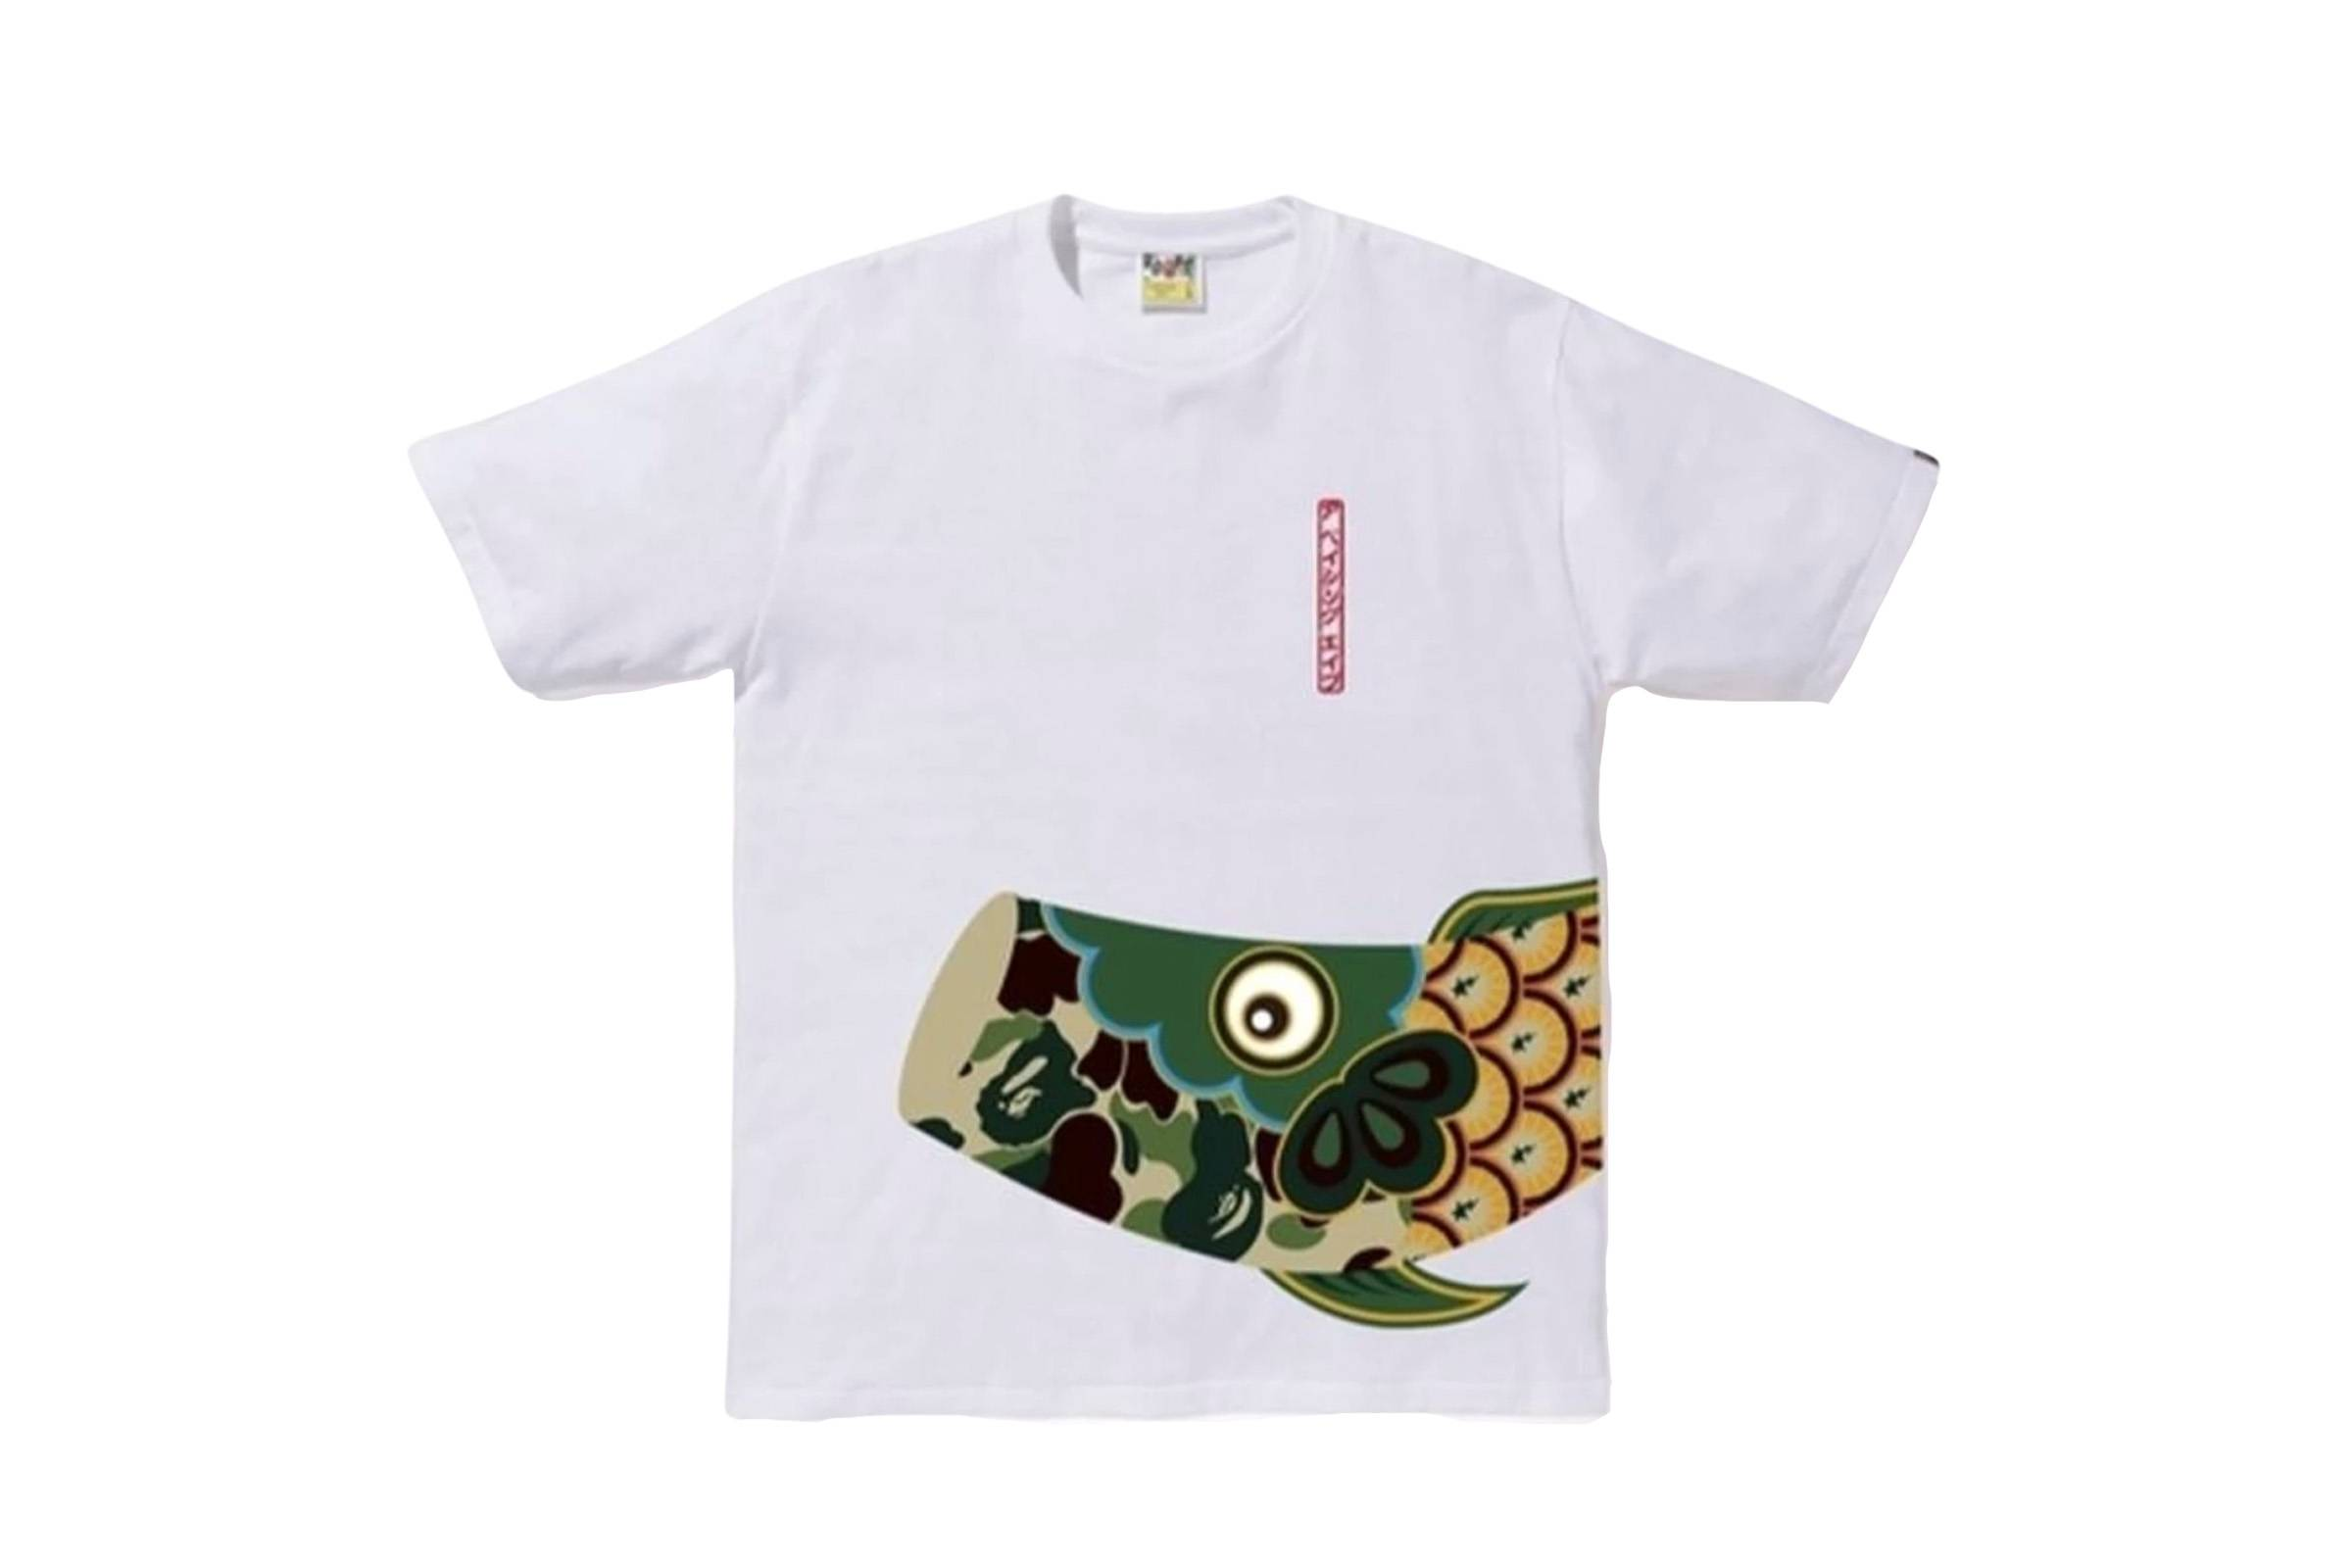 BAPE Children's Day Tee Shirt